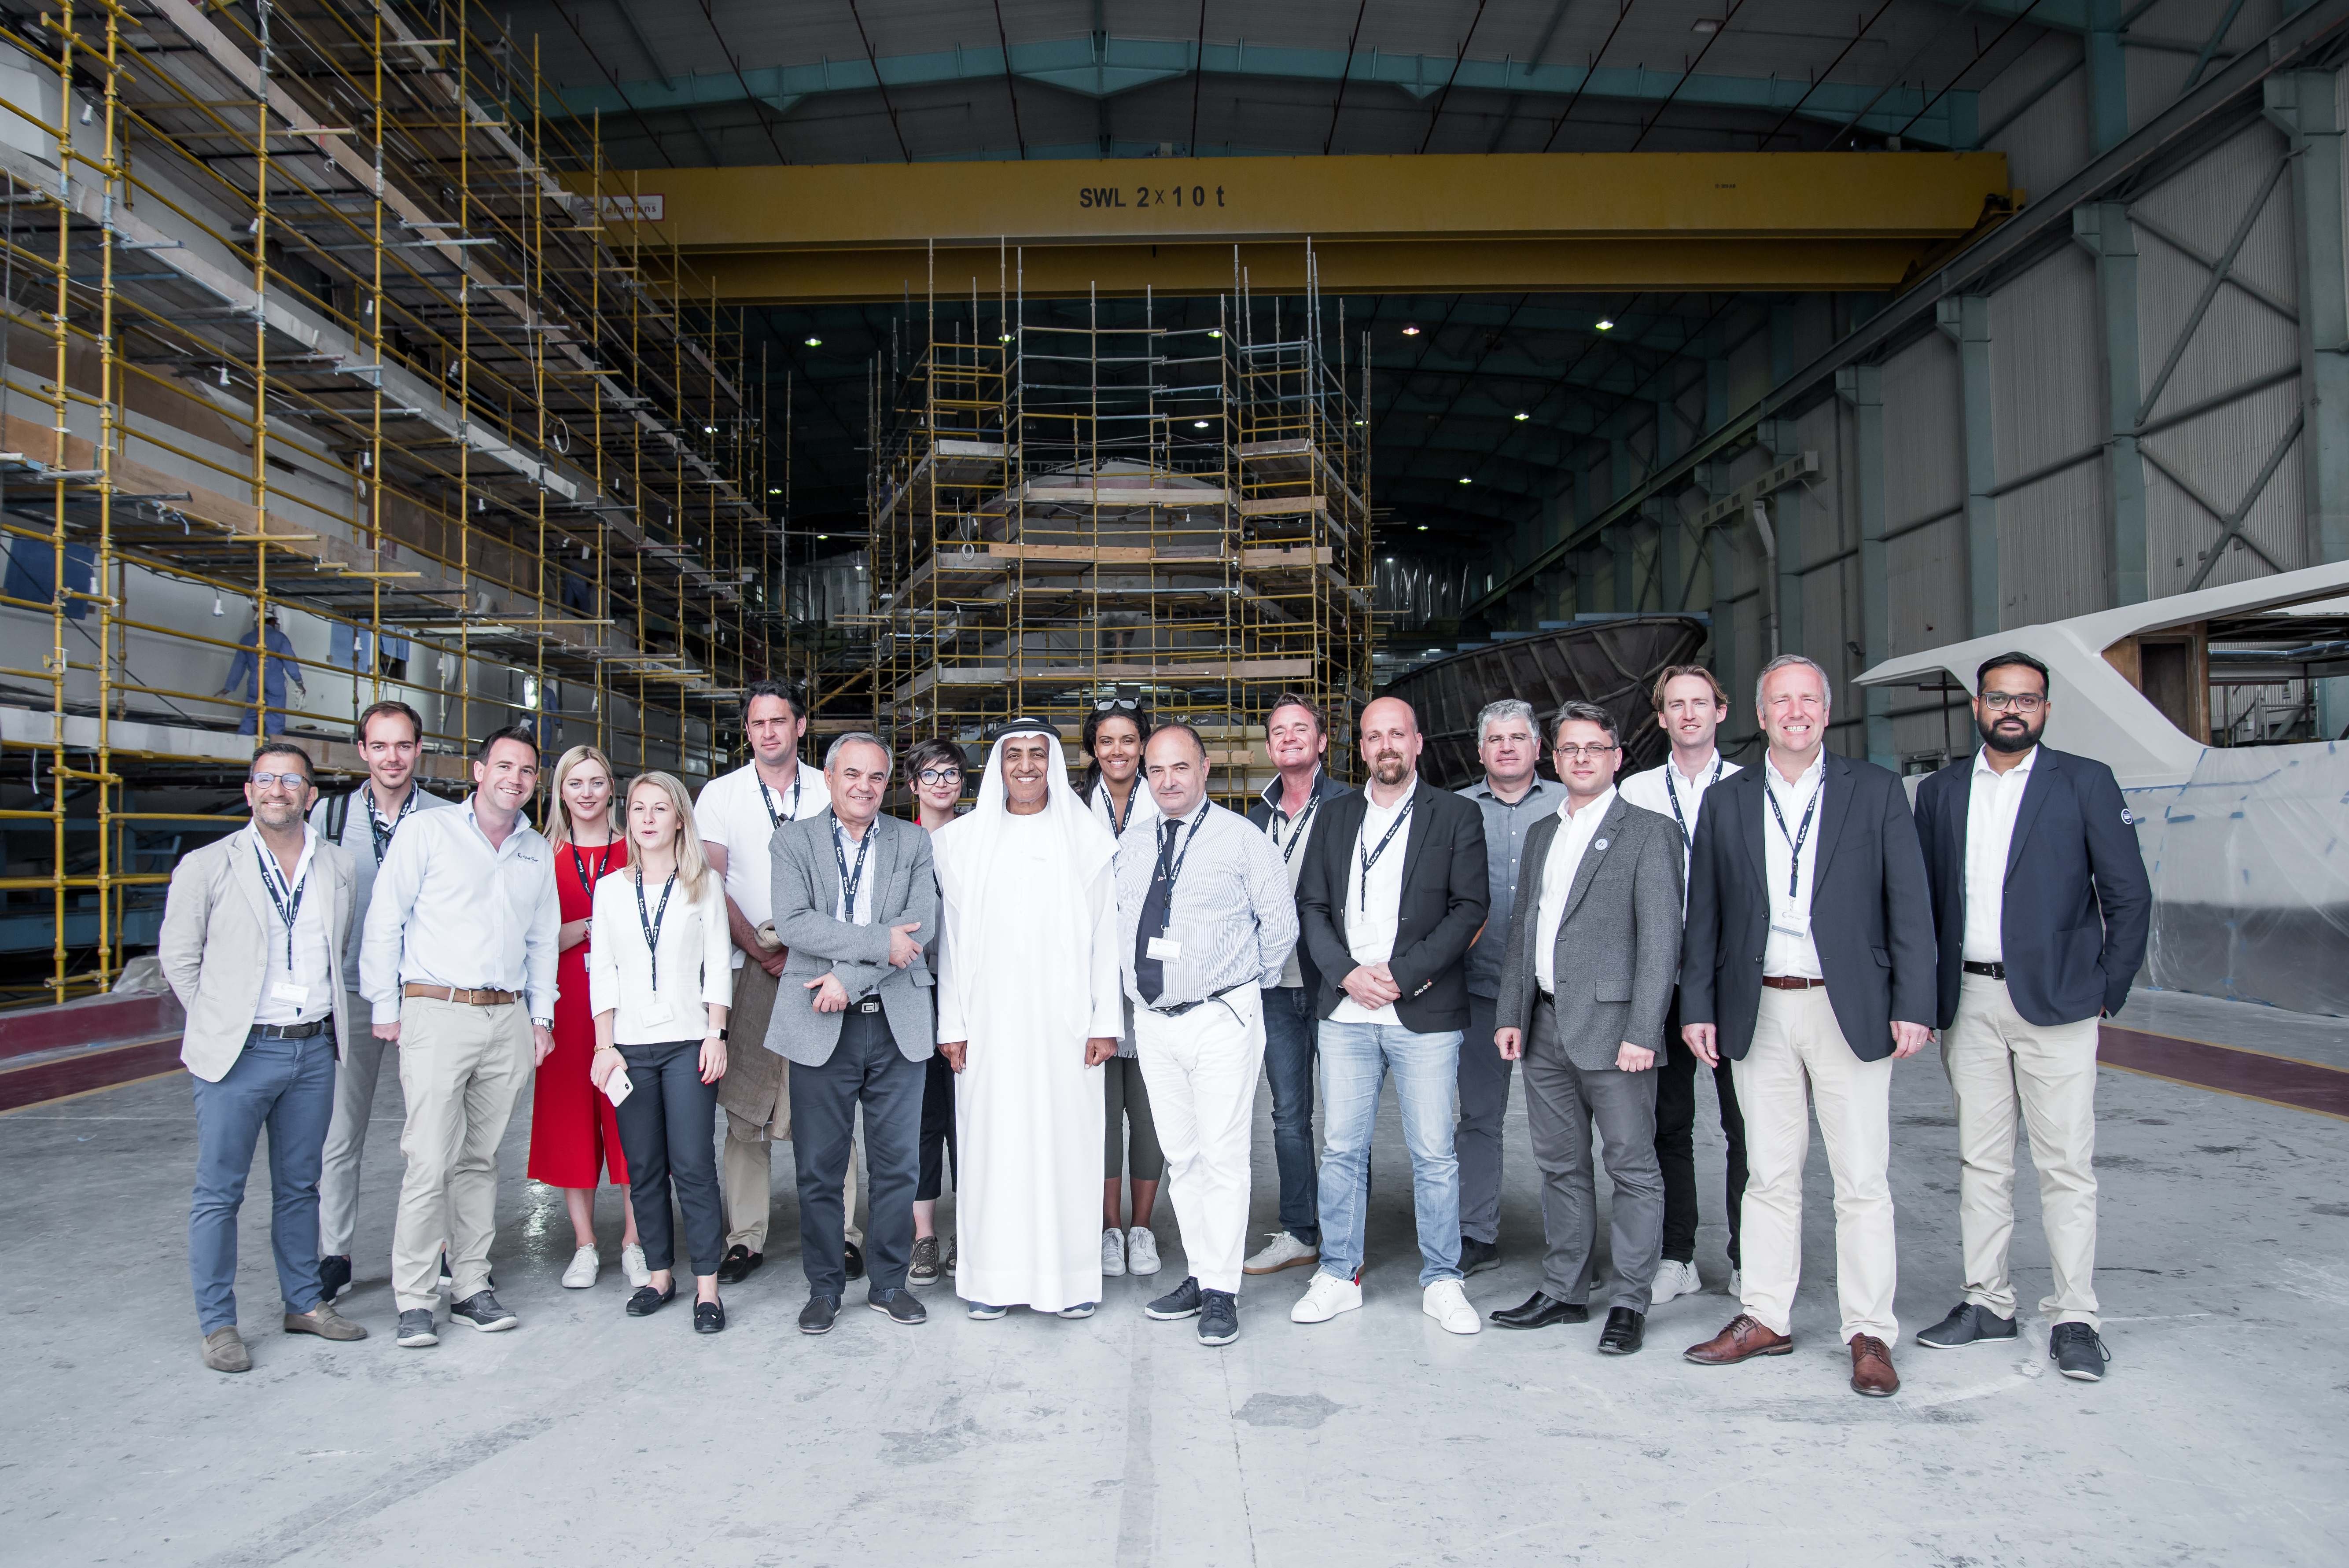 Group image during the press visit